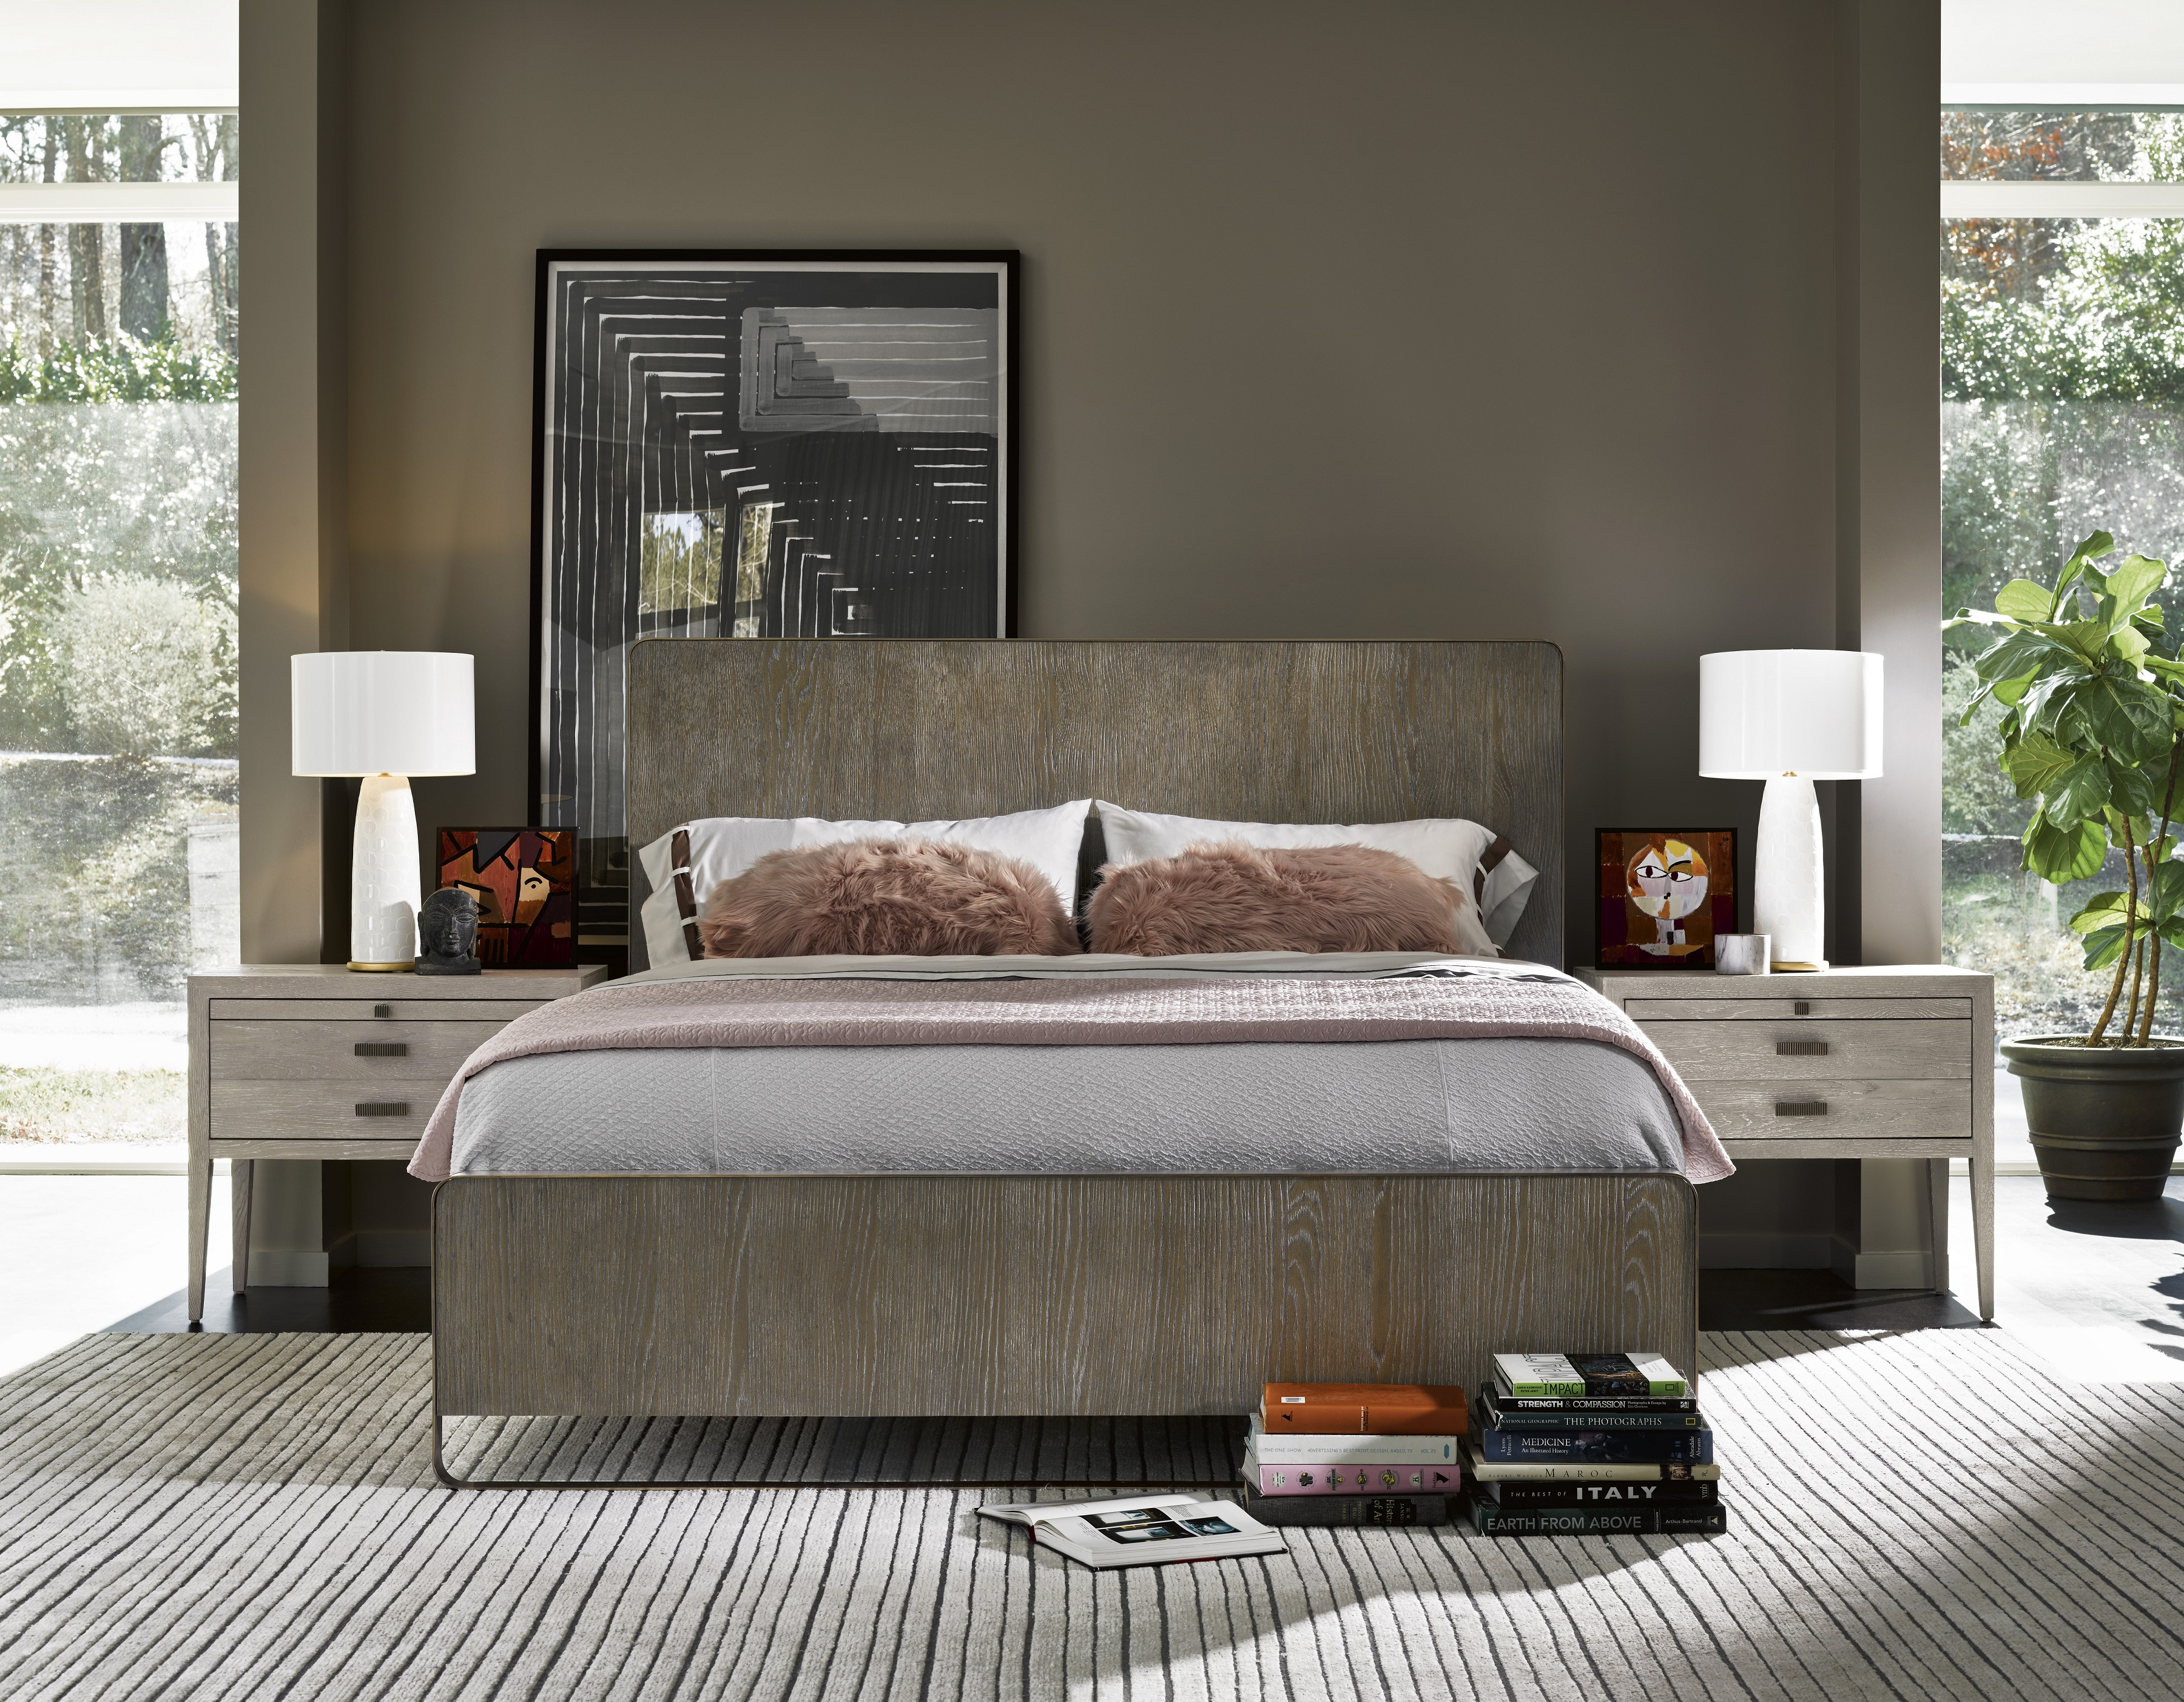 Wholesale discount factory direct bedroom furniture Indianapolis, Carmel, Zionsville